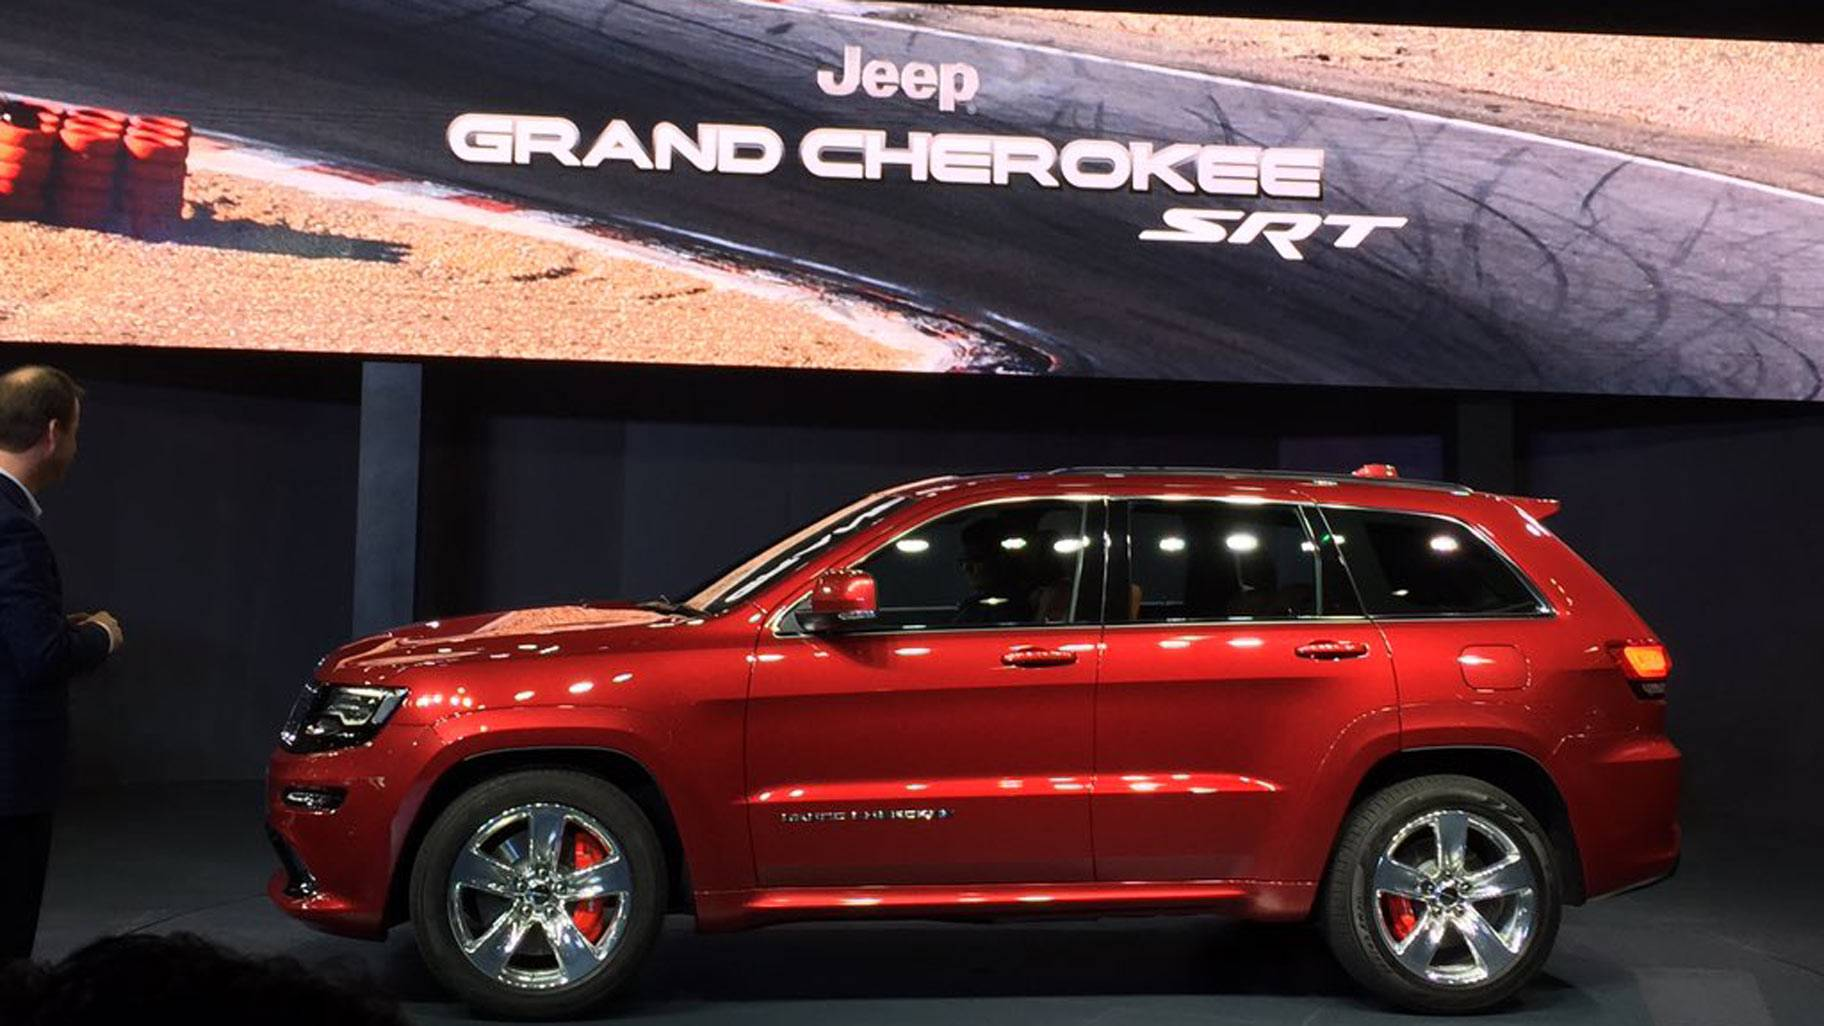 Fiat To Debut Jeep In India By Mid Year With 2 Models Auto News Wrangler Expo The Company Which Had Initially Planned Just Diesel Engines Now Plans Launch Grand Cherokee And Unlimited Both